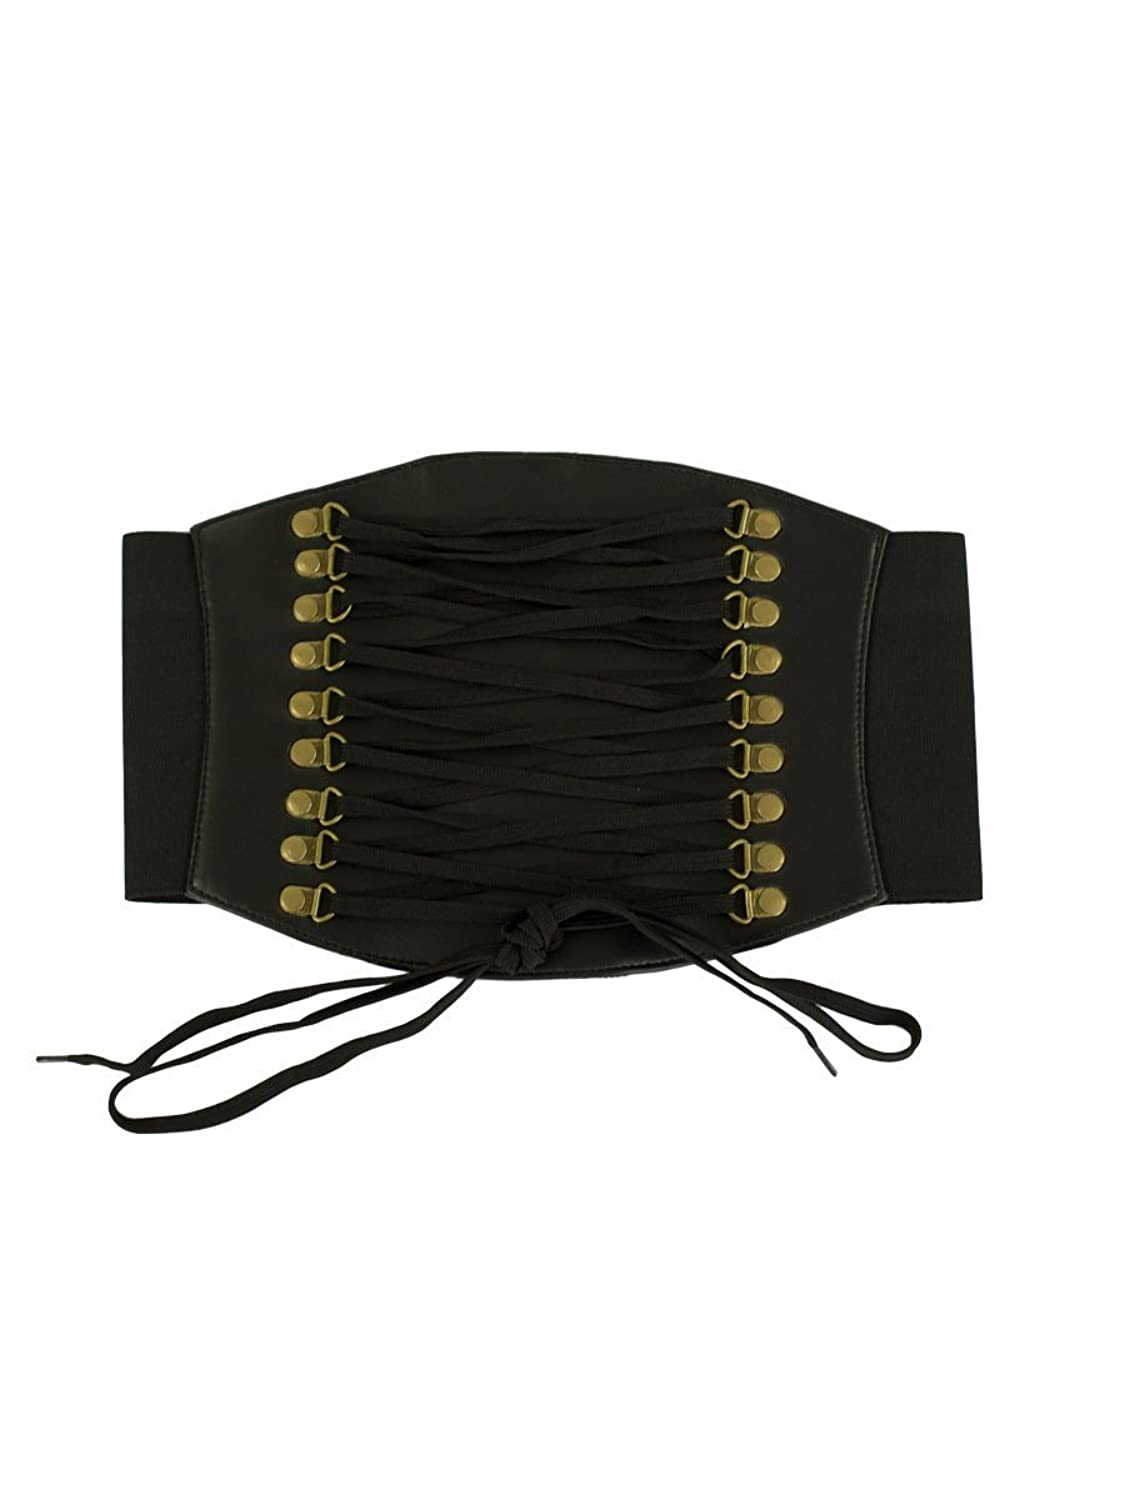 Steampunk Corsets & Belts | Underbust, Overbust Orchard Corset Faux Leather Corset Belt CB-915 $24.99 AT vintagedancer.com